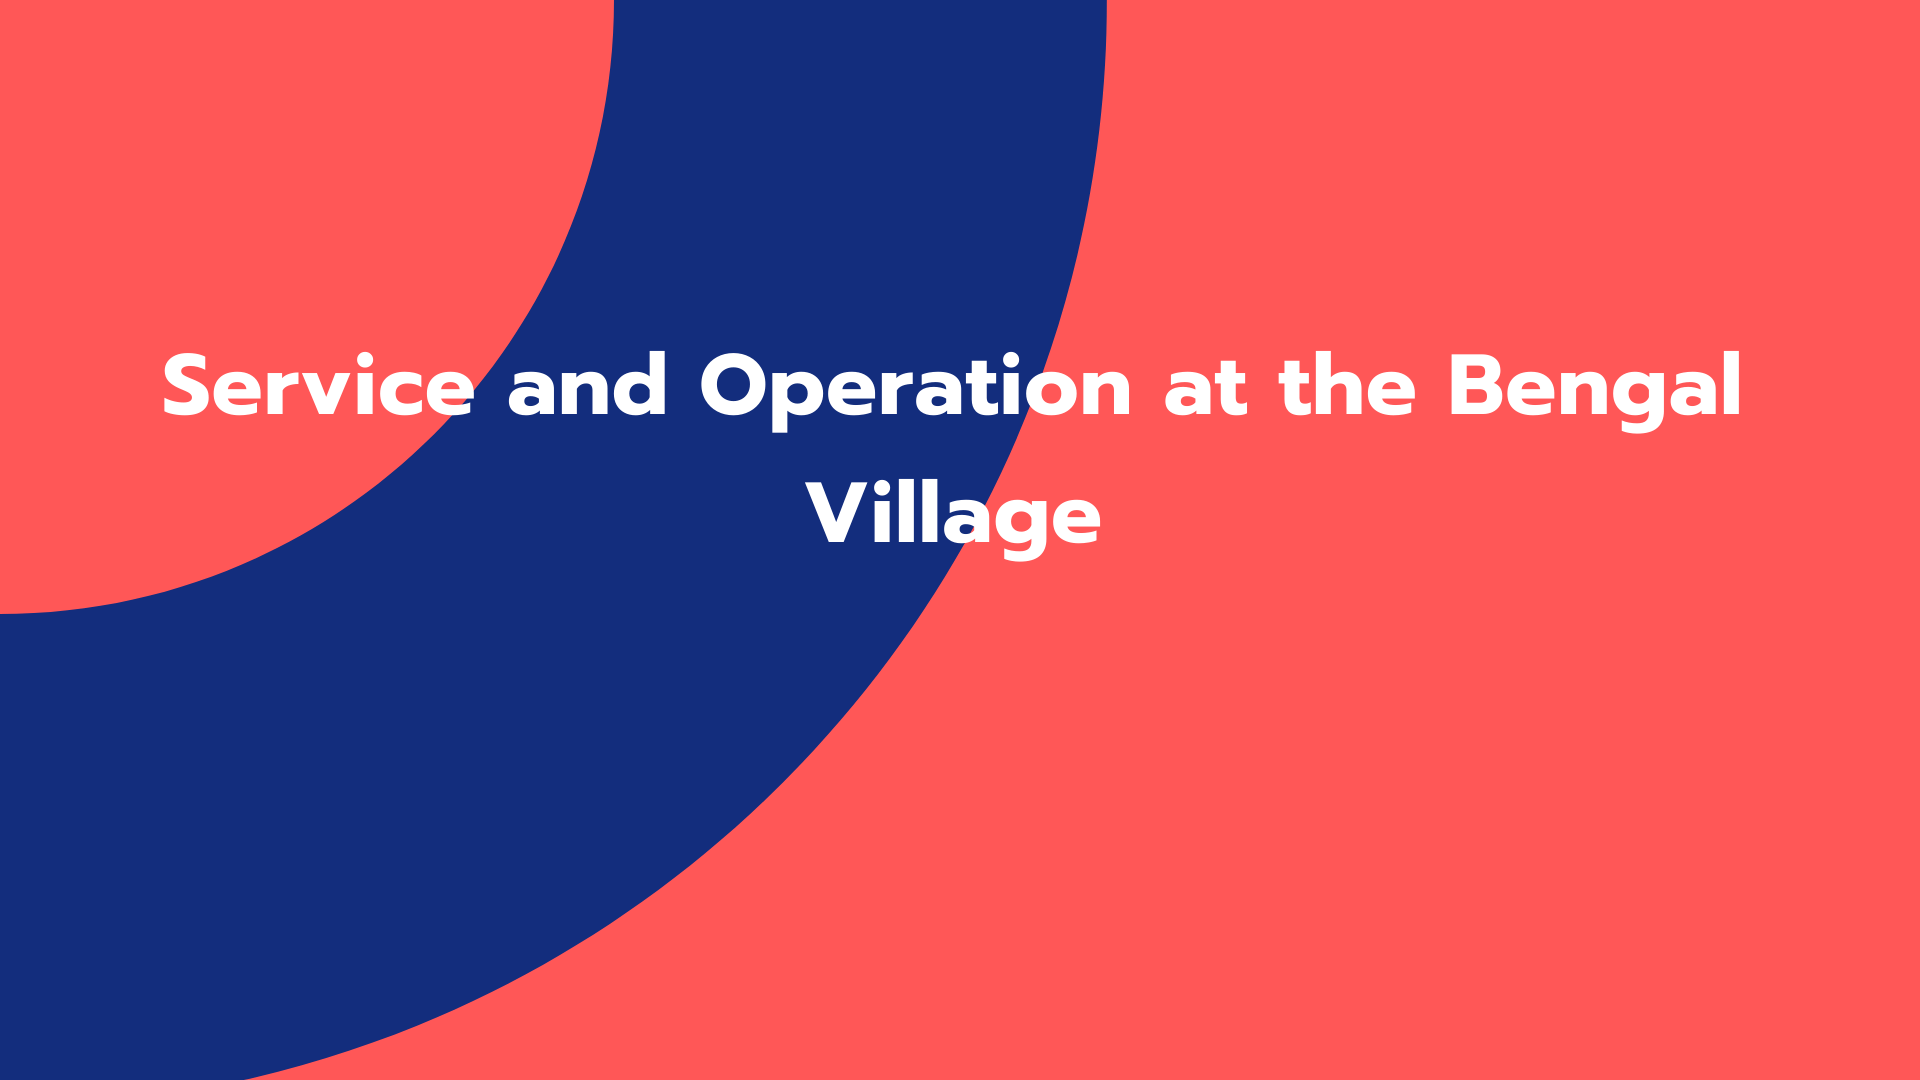 Service and Operation: Bengal Village